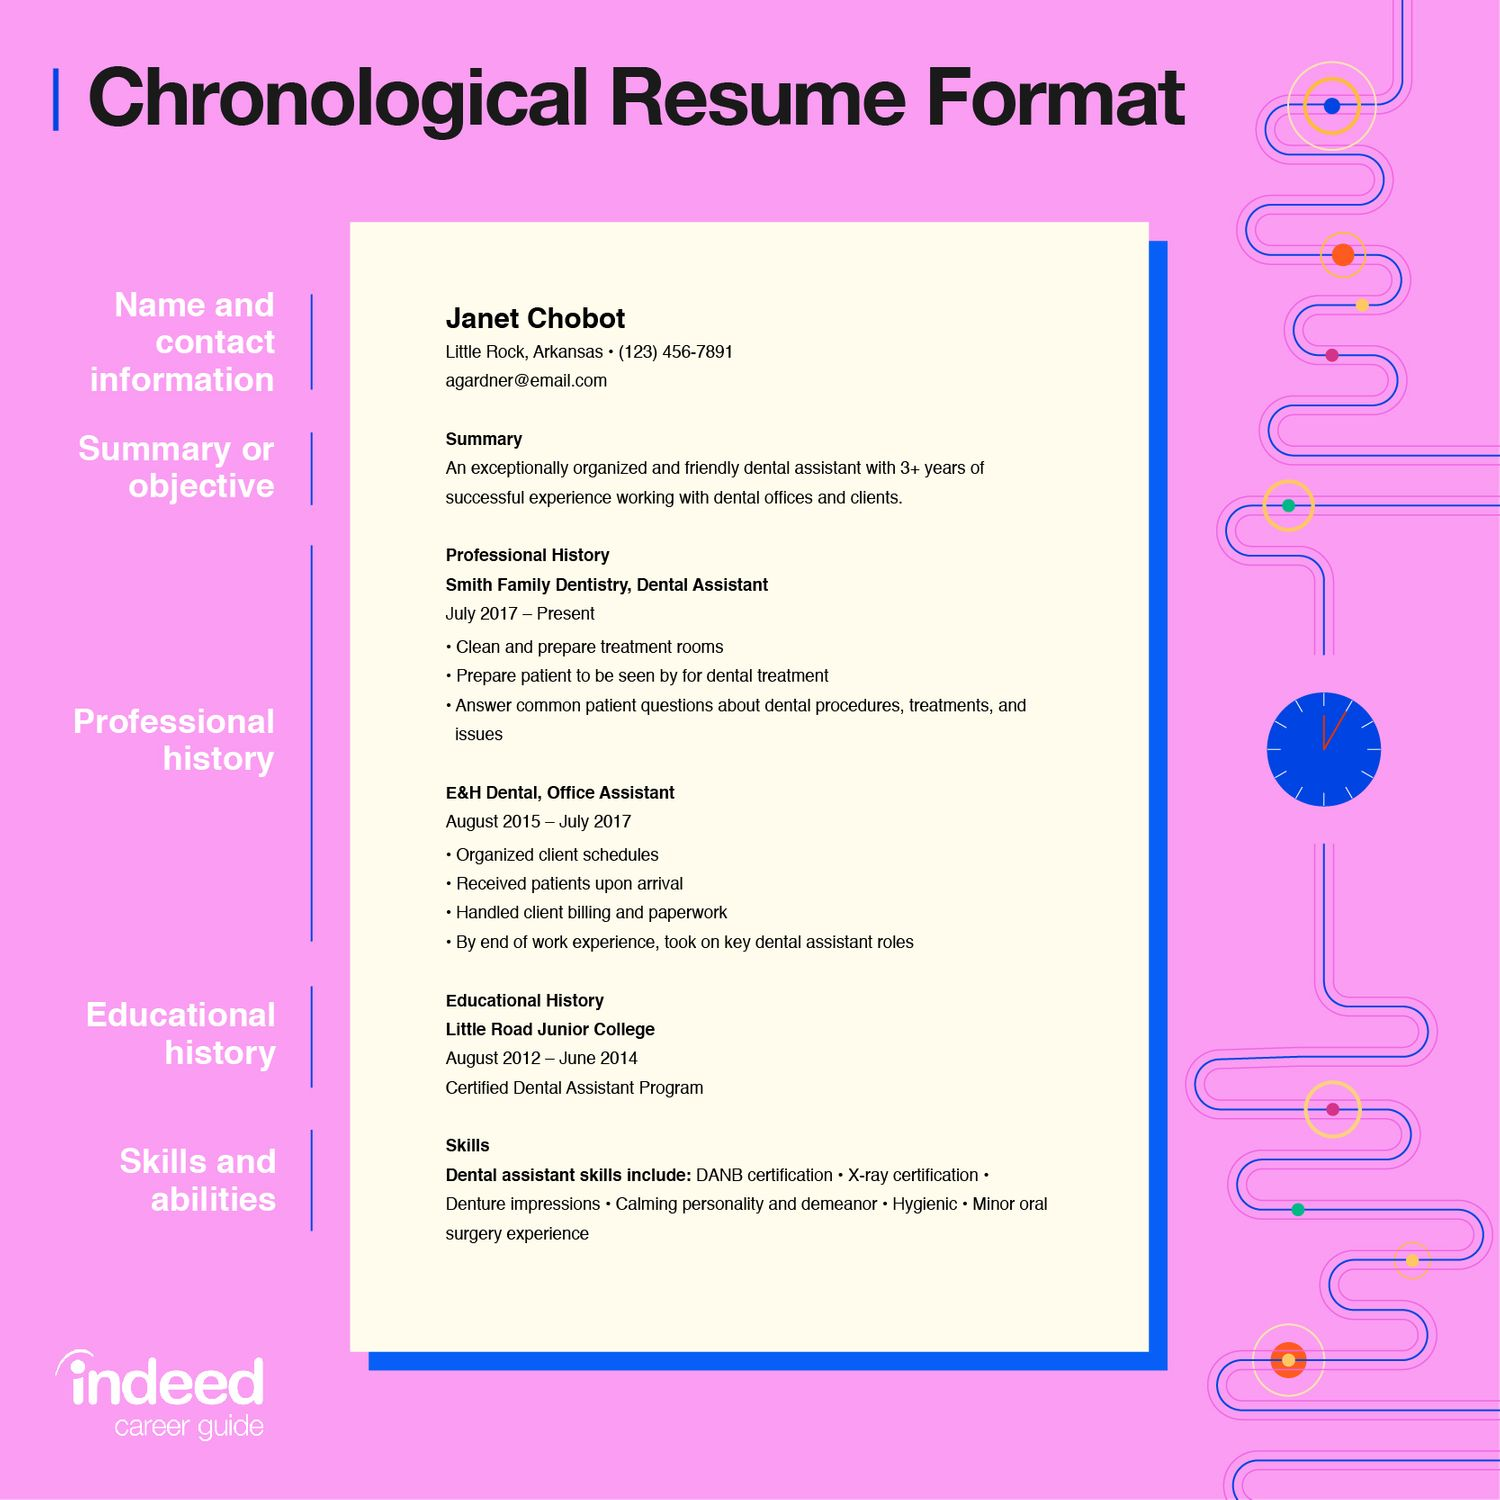 resume format guide tips and examples of the best formats indeed short resized plant Resume Best Short Resume Format